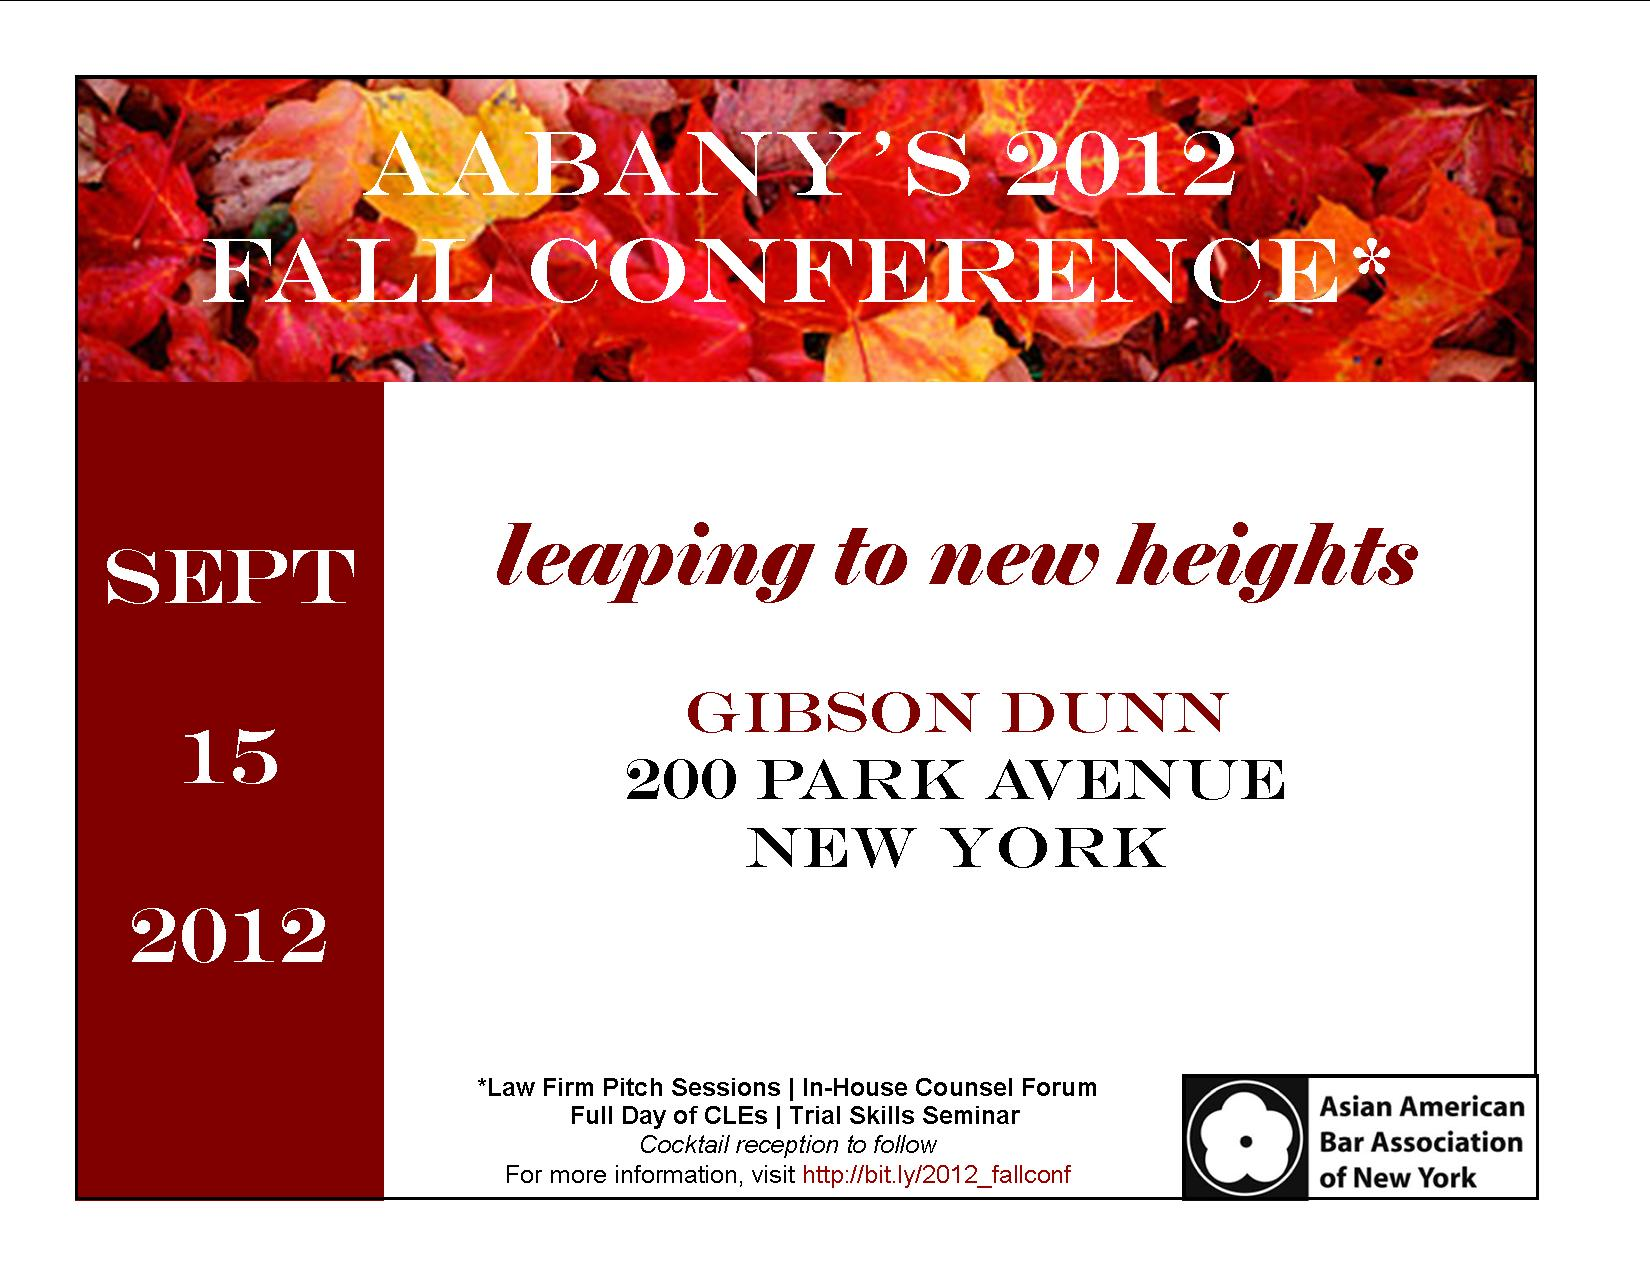 Fall Conference 2012